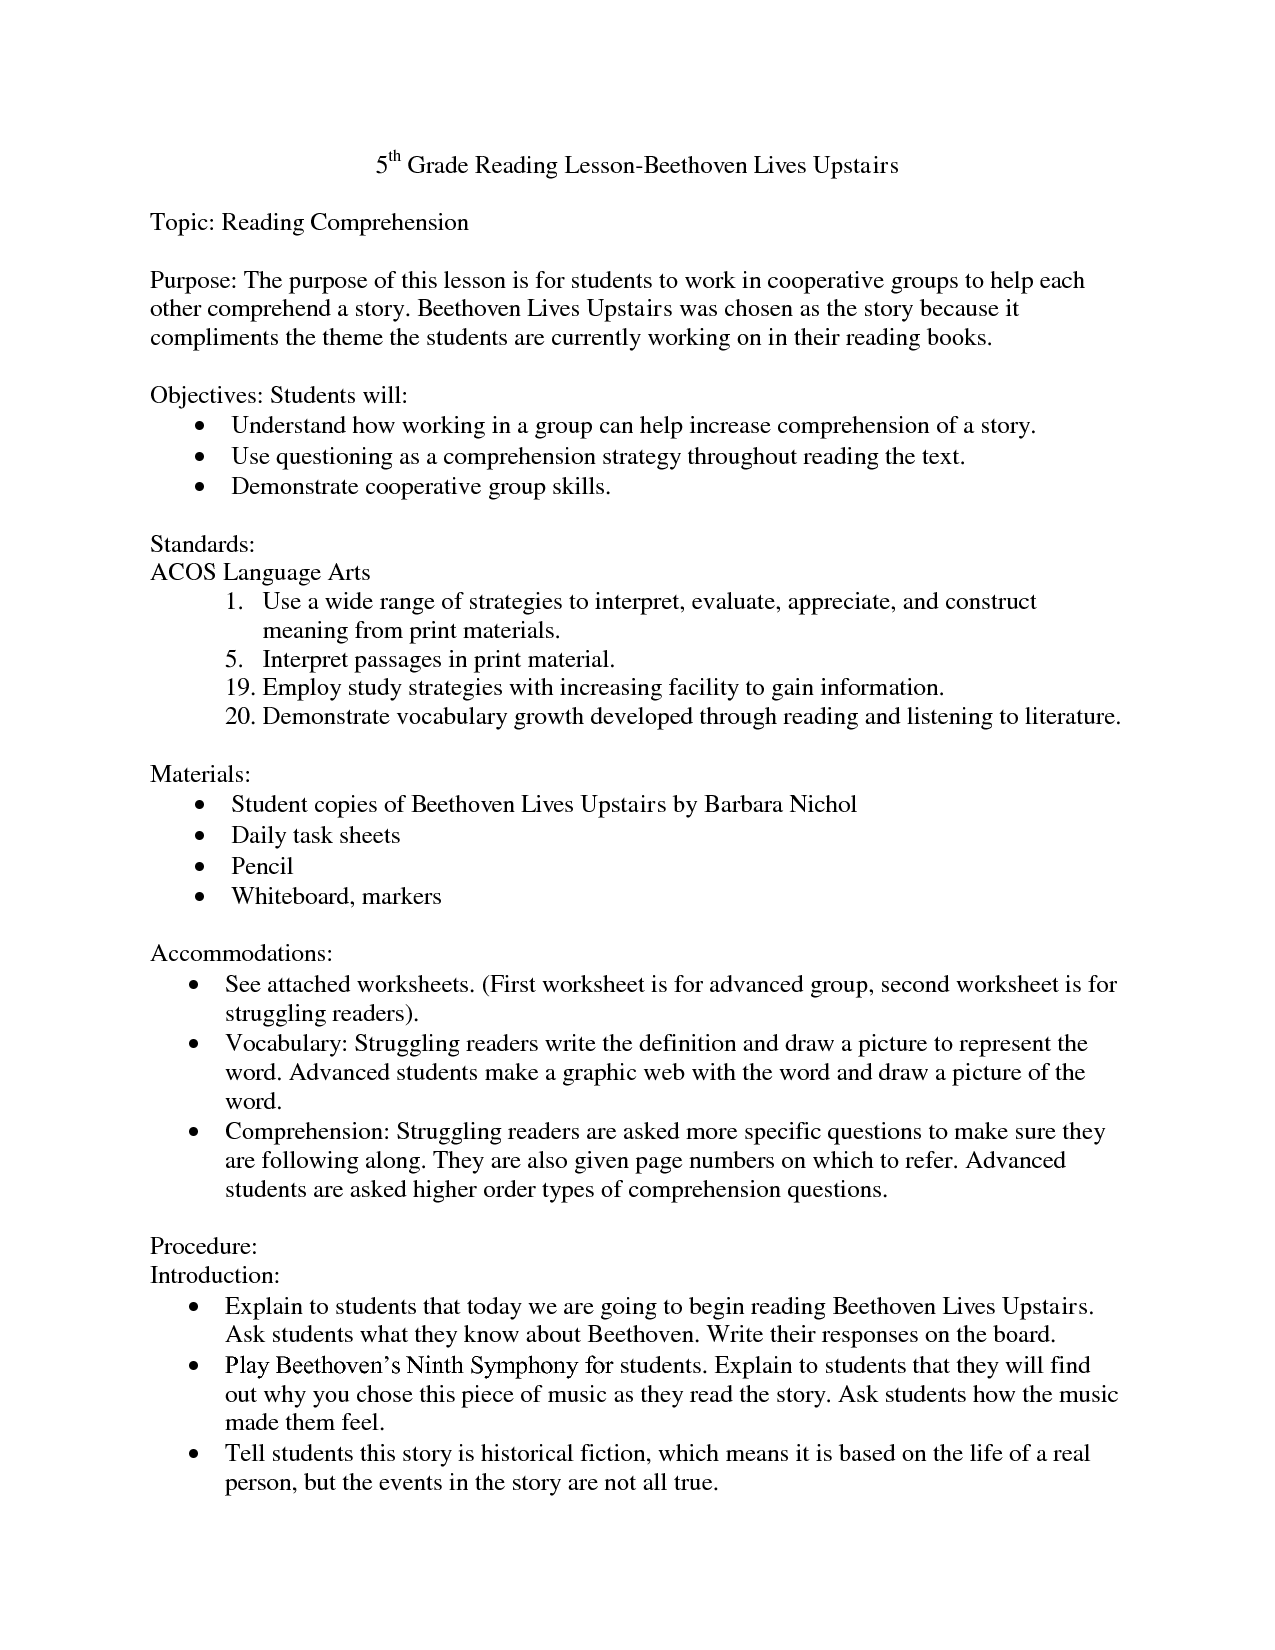 Free Worksheet Free Printable High School Reading Comprehension Worksheets worksheet 604780 math and reading worksheets free for 5th graders comprehension